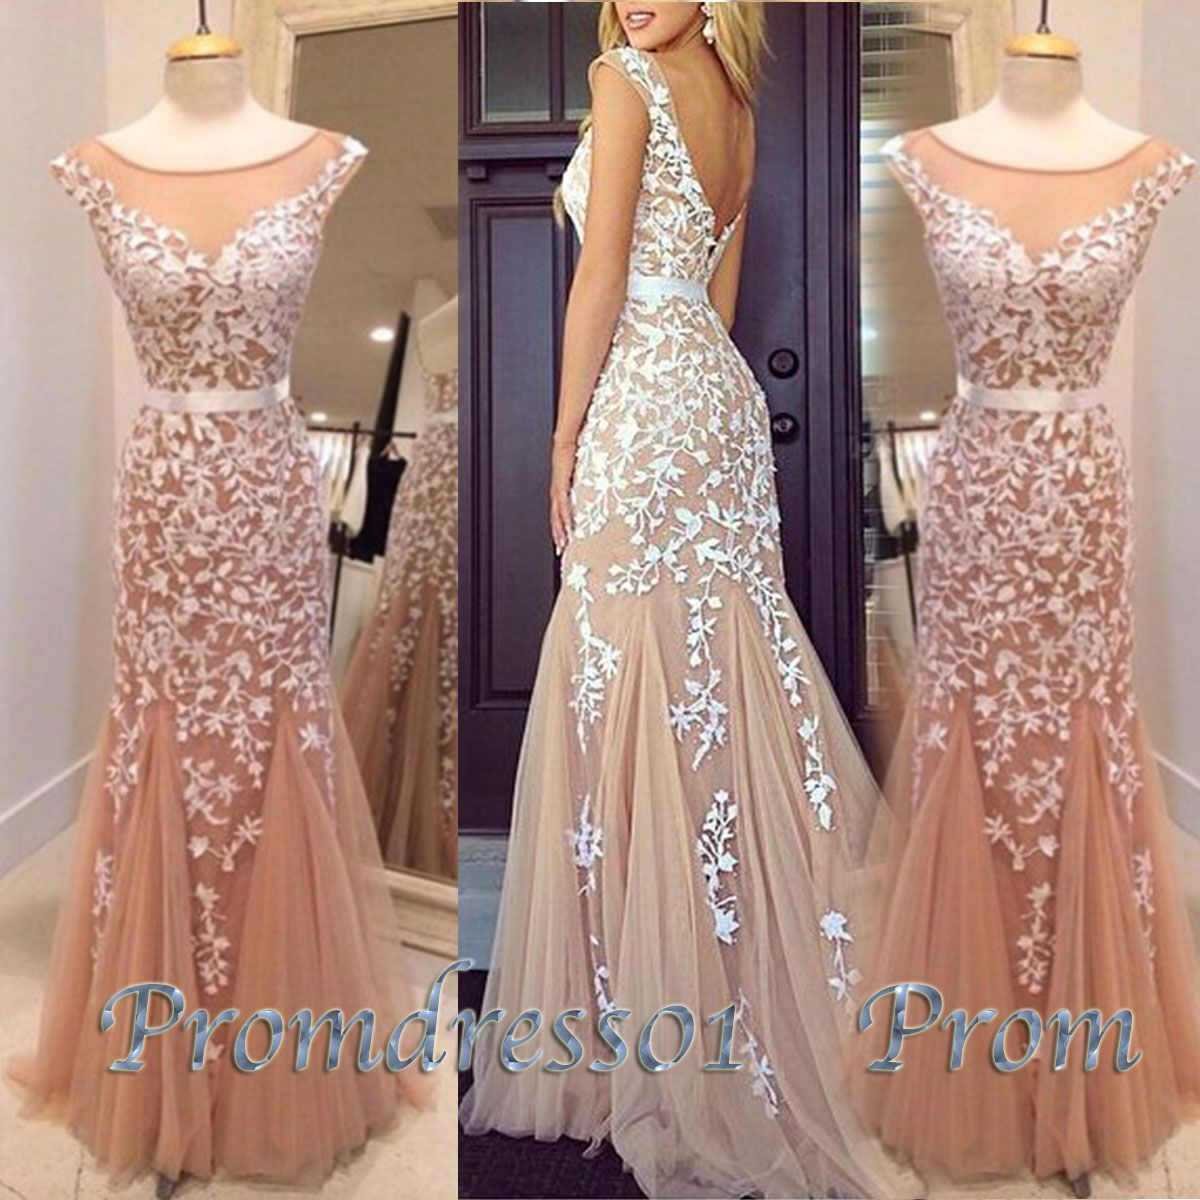 2015 lace chiffon prom dress | Prom | Pinterest | Prom dresses ...